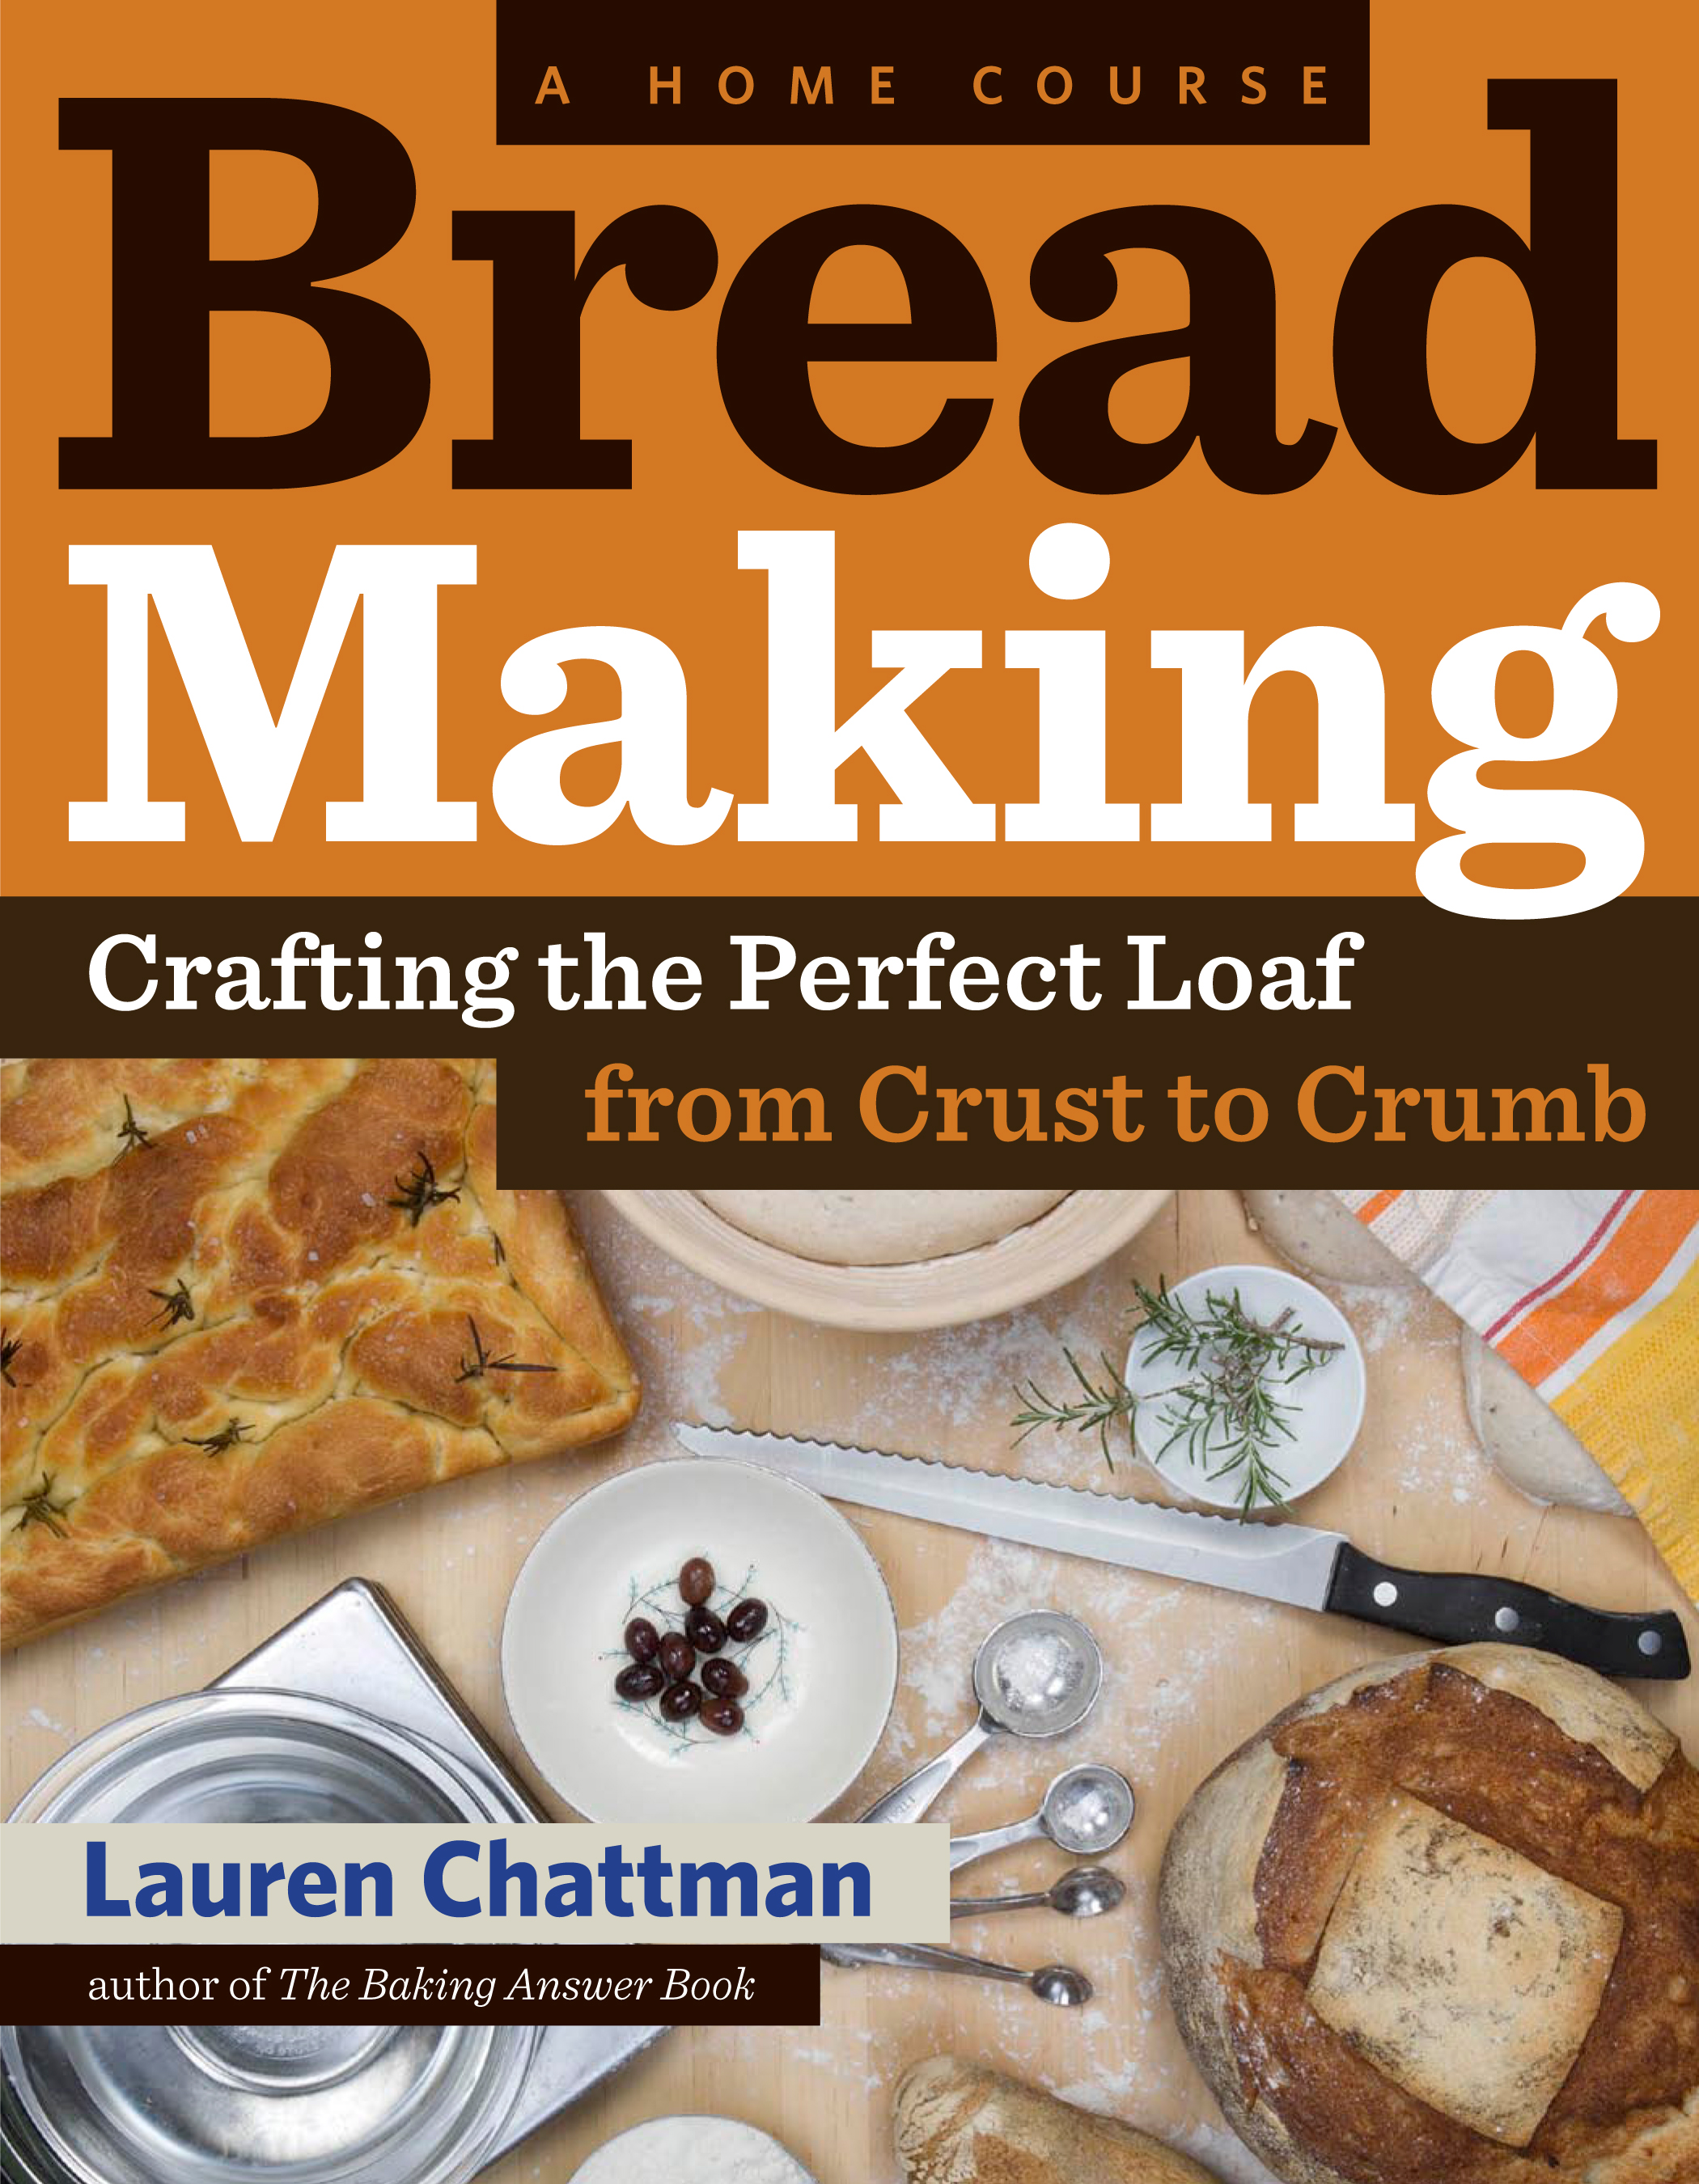 Bread Making: A Home Course Crafting the Perfect Loaf, From Crust to Crumb - Lauren Chattman